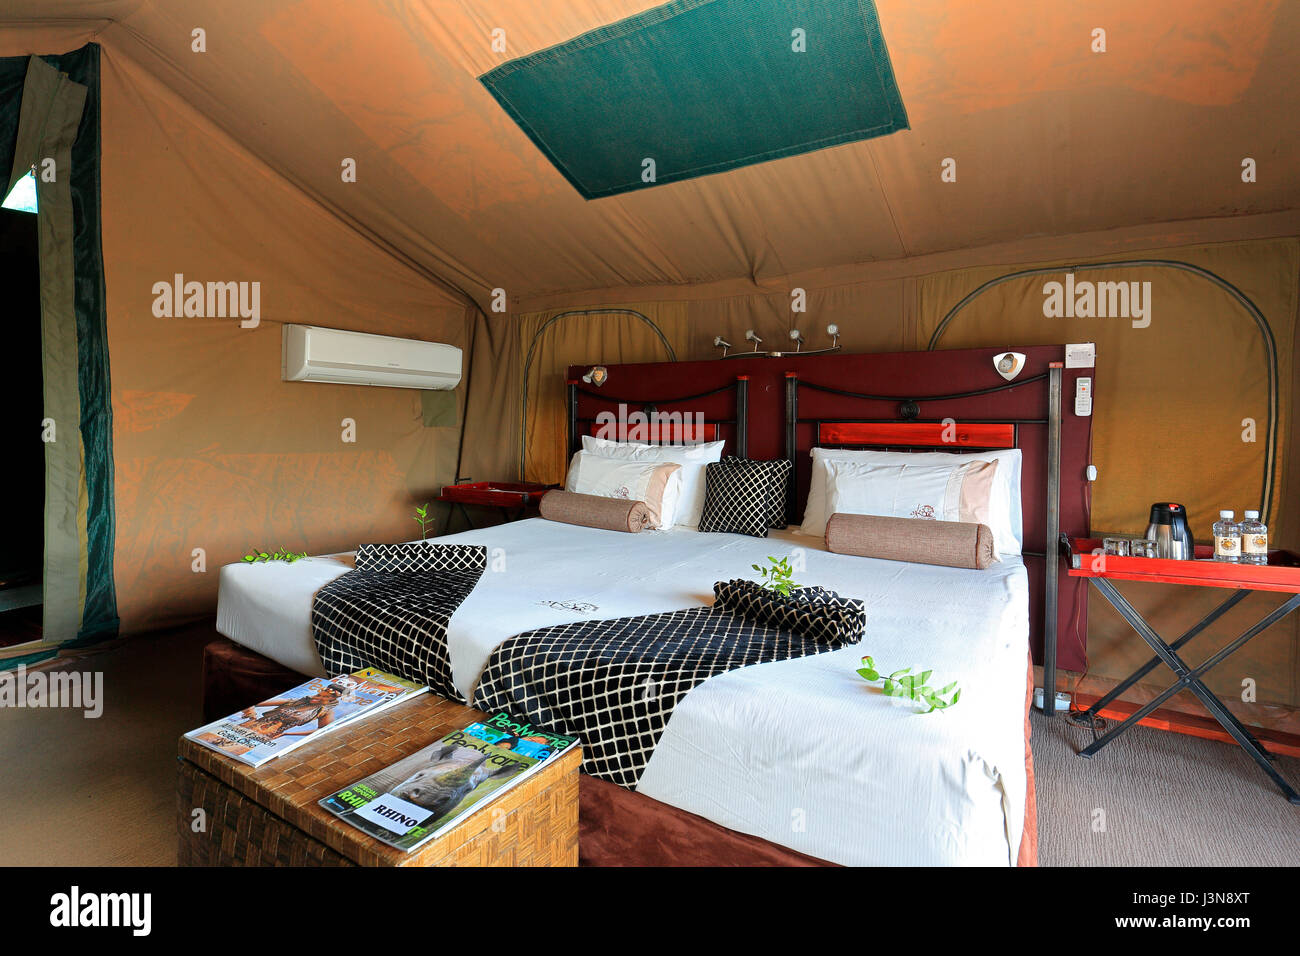 Hotelbett Stock Photos Hotelbett Stock Images Alamy